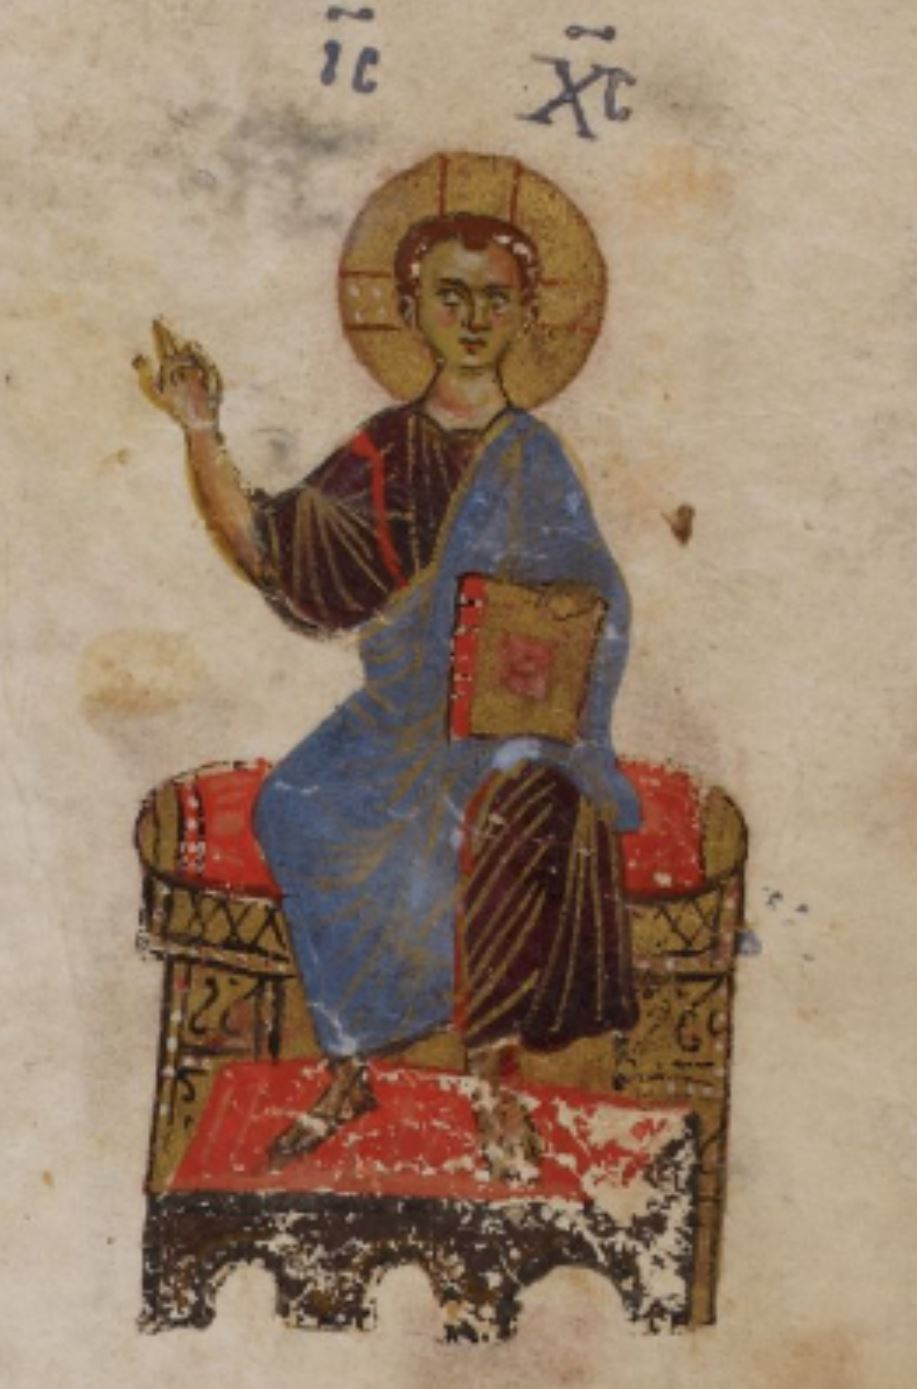 1066 Psautier theodore Christ as a boy, teaching fol 56r BL Add.19352